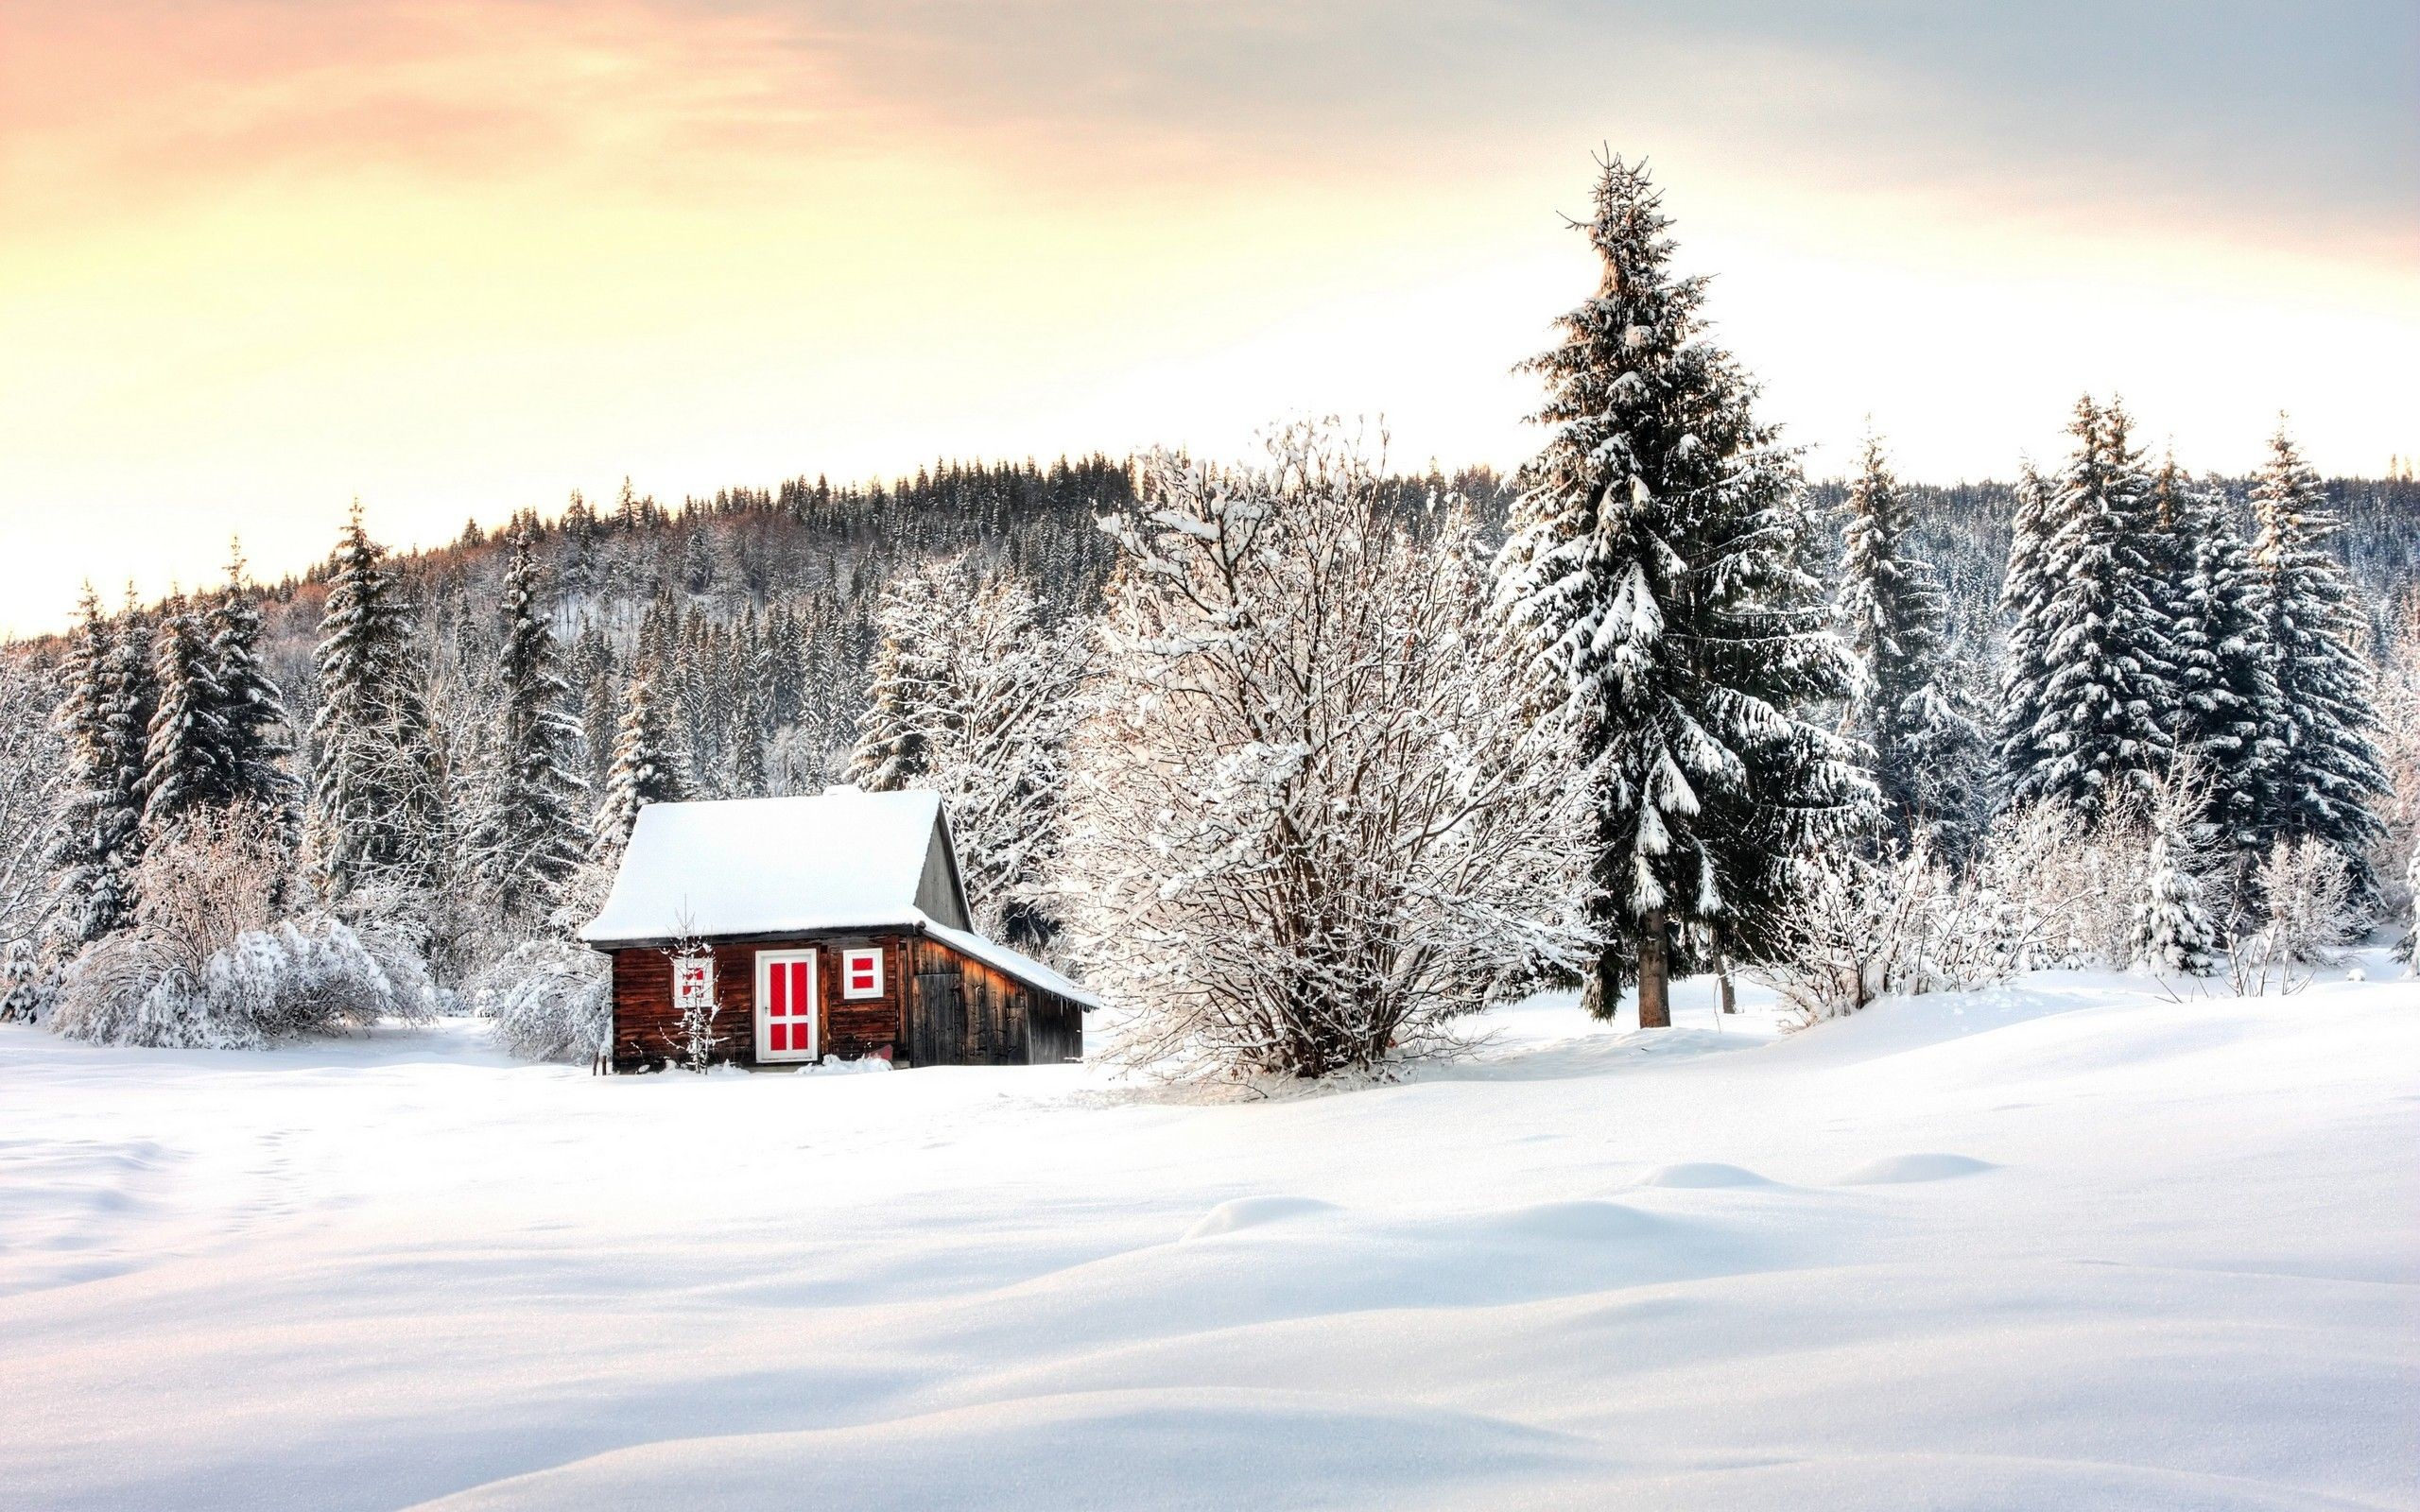 2560x1600 Winter cabin scenes wallpapers download at wallpaperbro jpg  Cabin  christmas winter wallpaper siberian picturesque